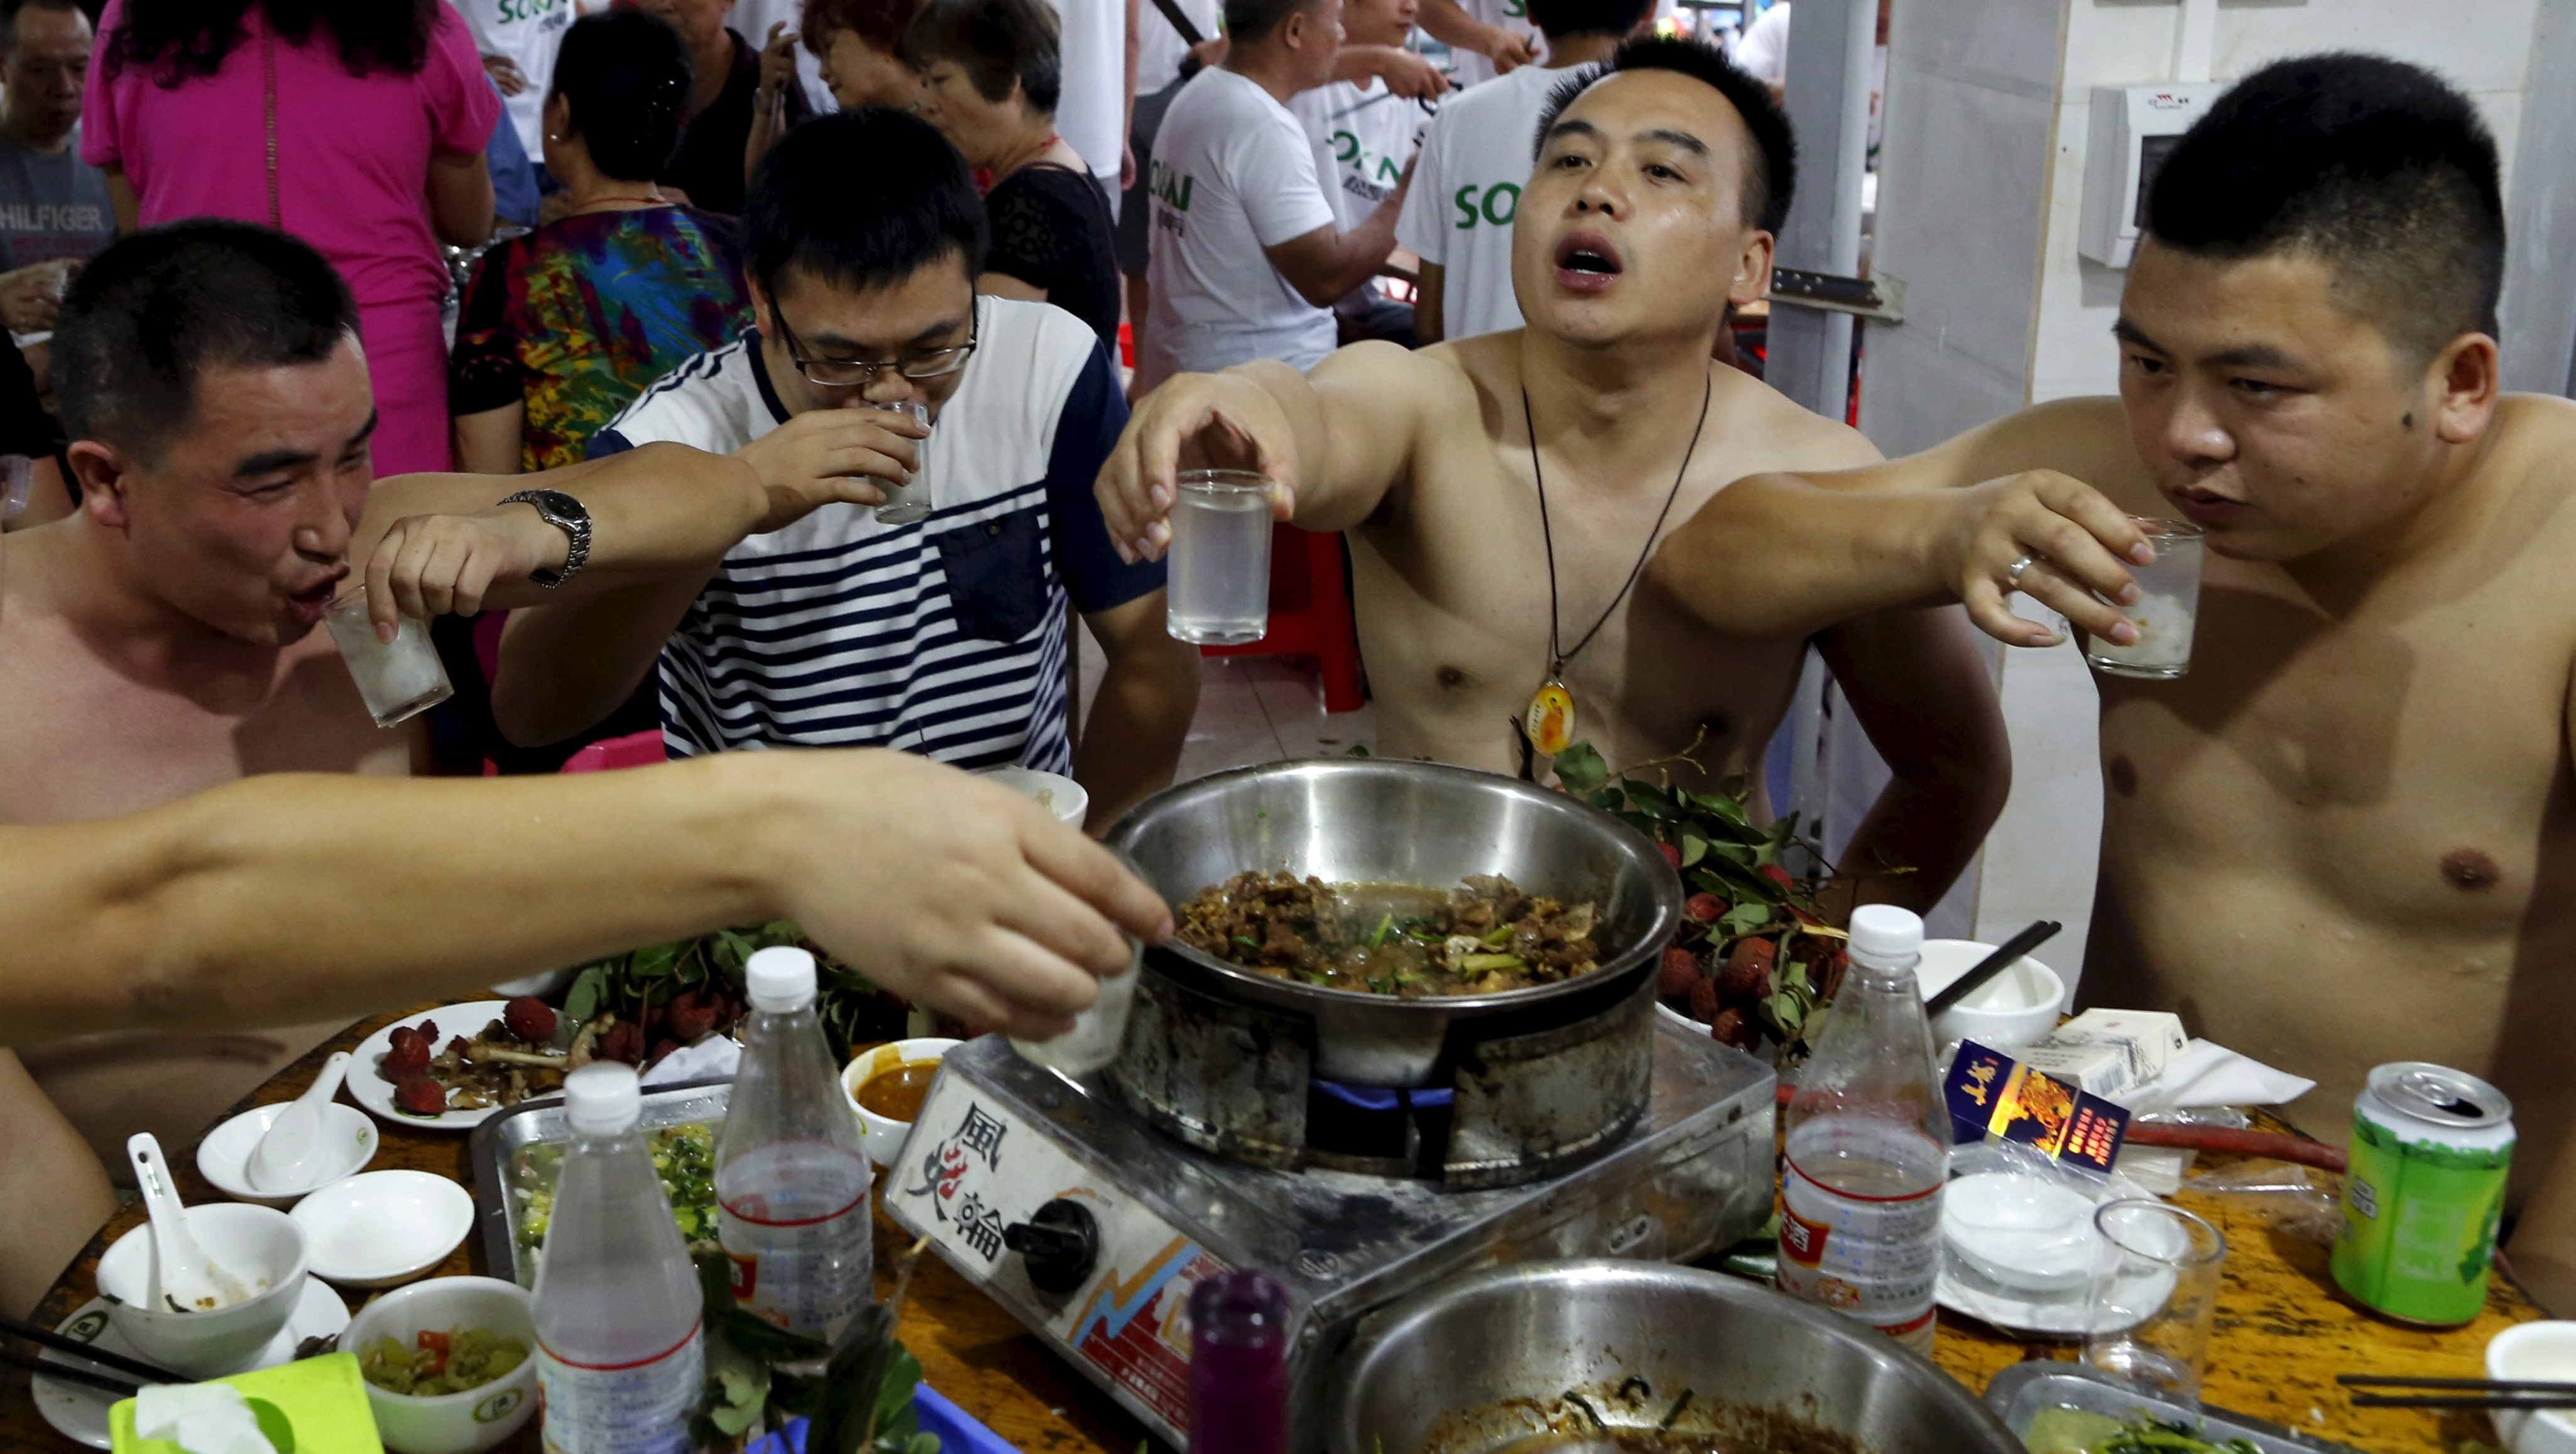 People toast over a dog meat dish at a dog meat restaurant on the day of local dog meat festival in Yulin, Guangxi Autonomous Region, June 22, 2015. For many residents of China's southern town of Yulin, the peak of summer is the perfect time to get together with family and friends - and consume copious amounts of dog meat. Thousands of dogs are expected to end up on the chopping block during the city's annual dog meat festival, which has become increasingly controversial in China. REUTERS/Kim Kyung-Hoon - RTX1HLHV